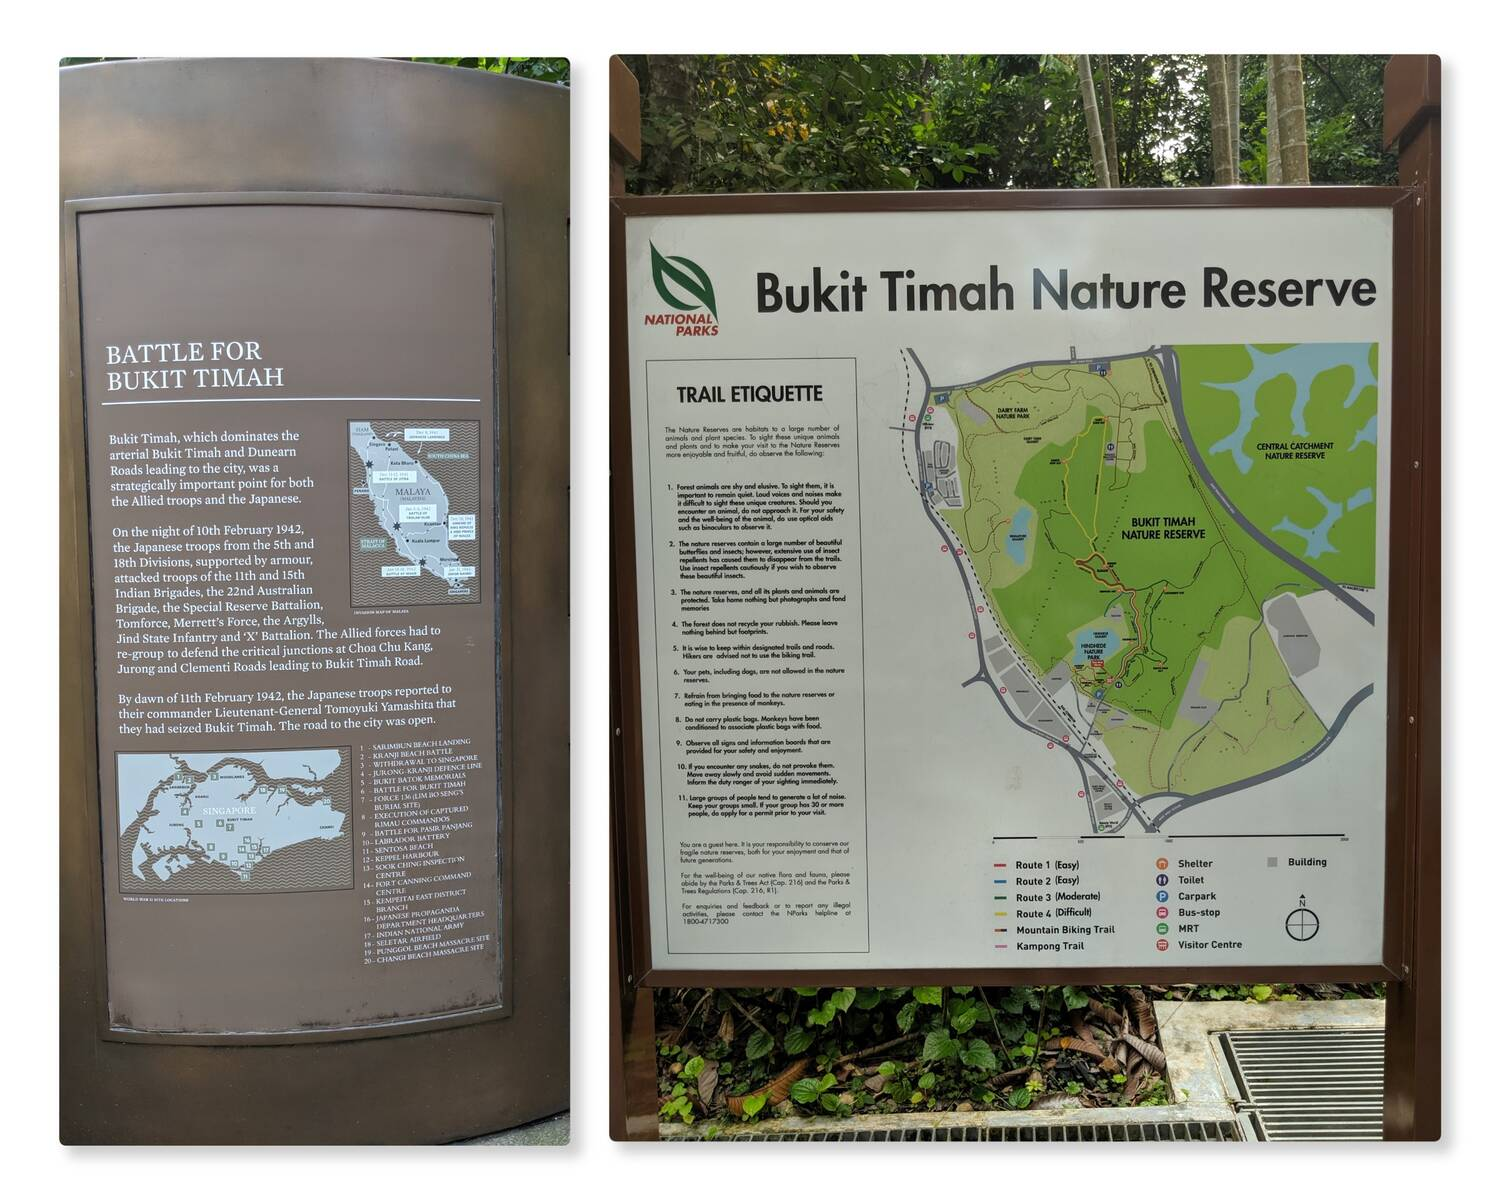 The Map and the Battle for Bukit Timah